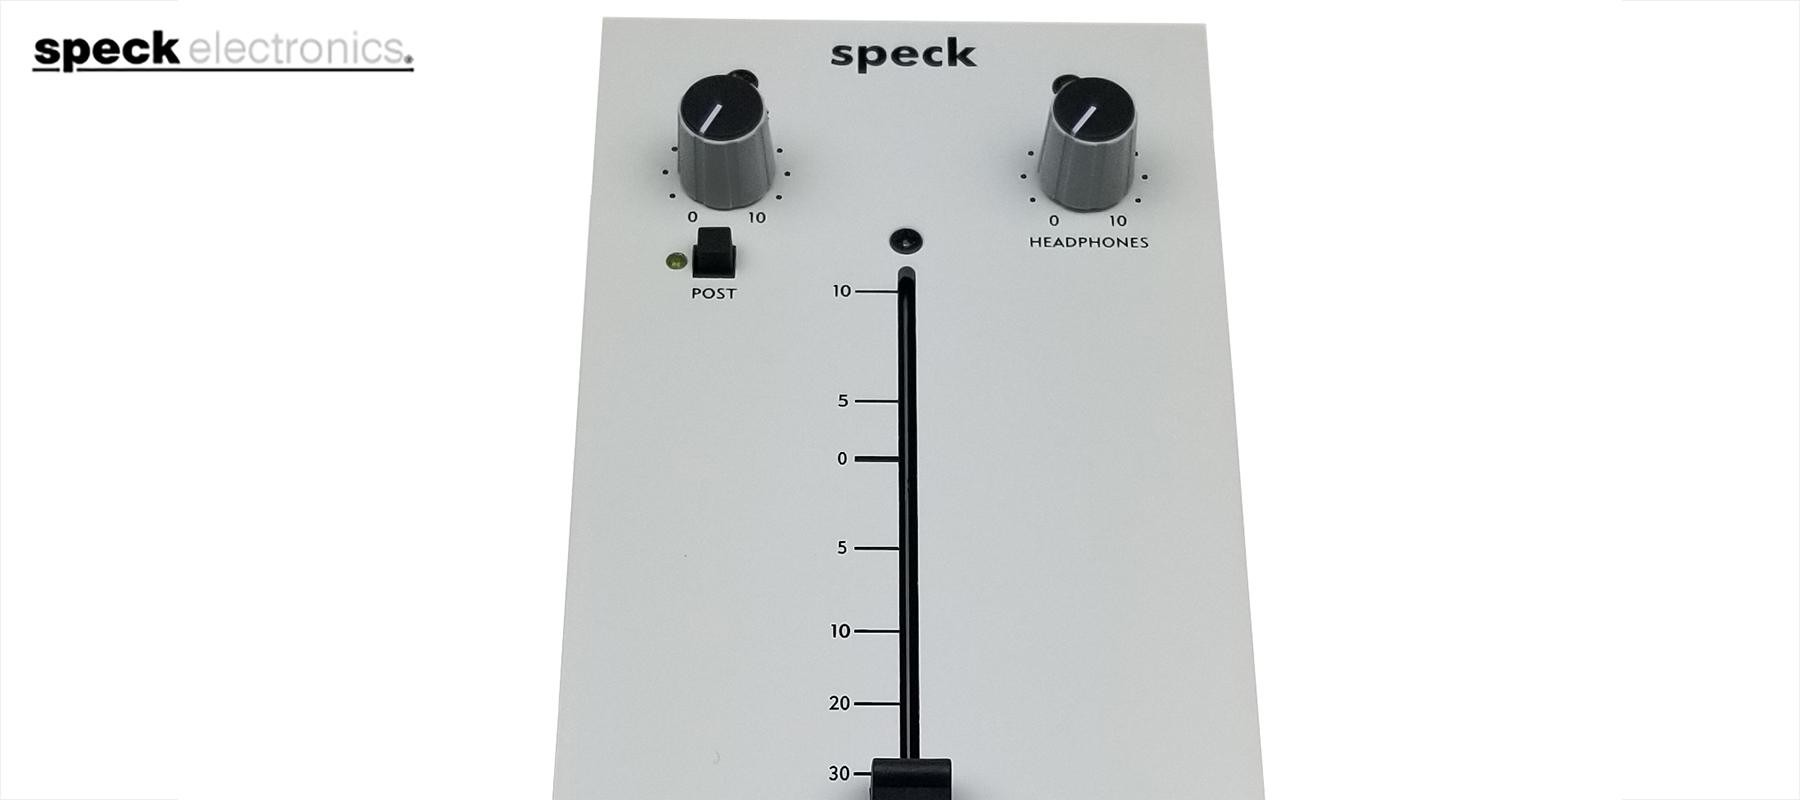 Speck Electronics Fader 3